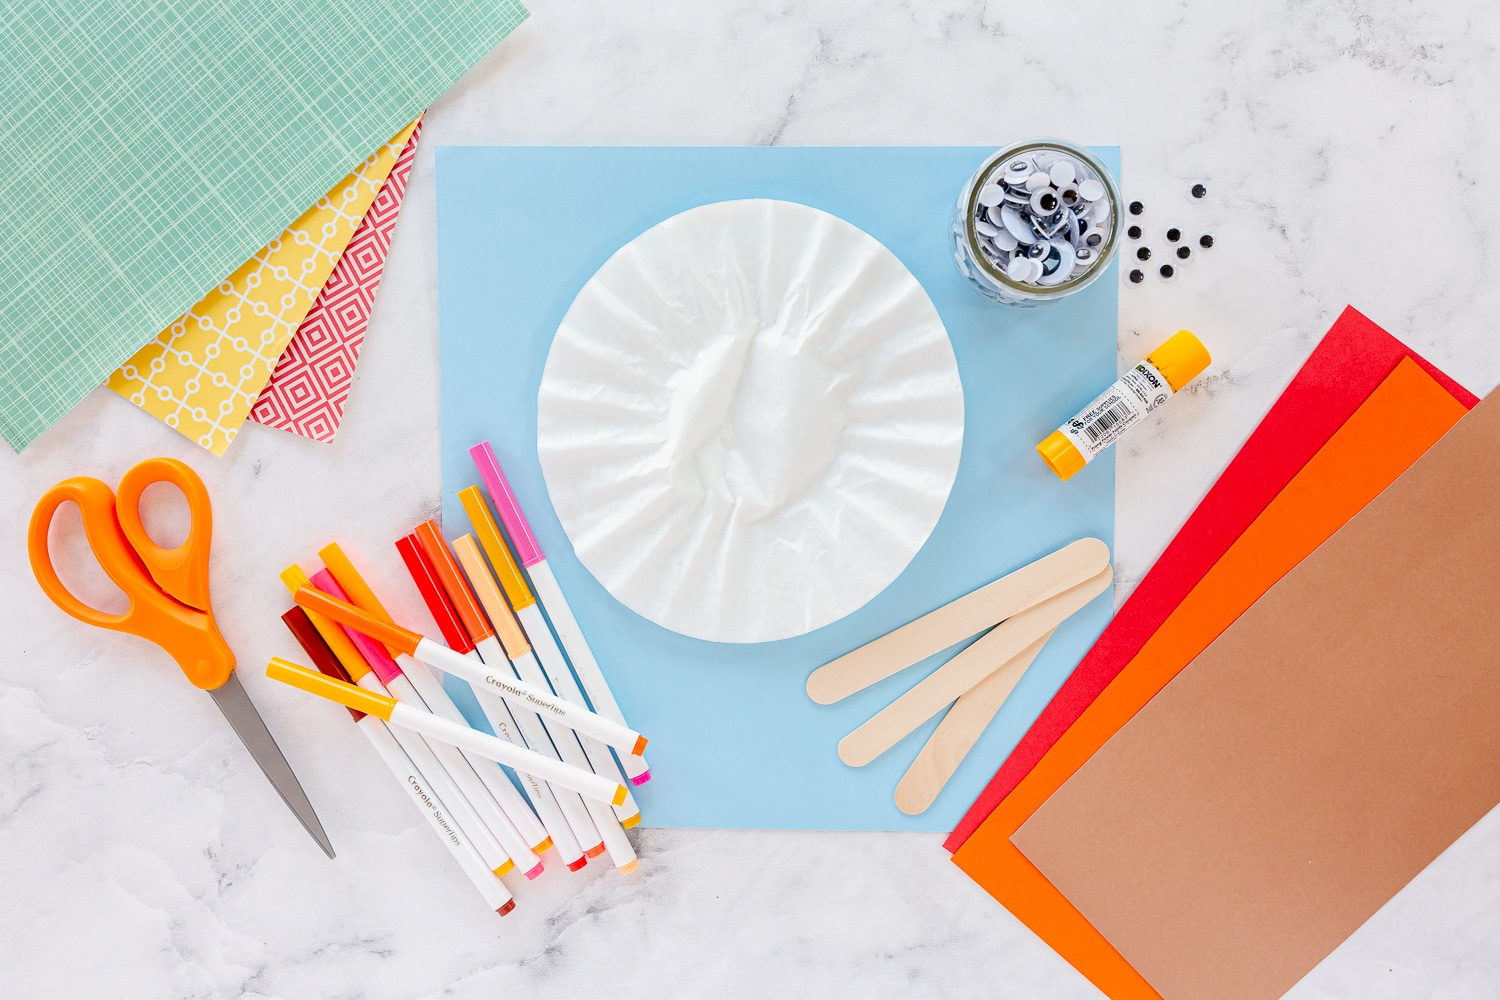 supplies: washable markers, coffee filters, jumbo popsicle stick, glue, googly eyes.